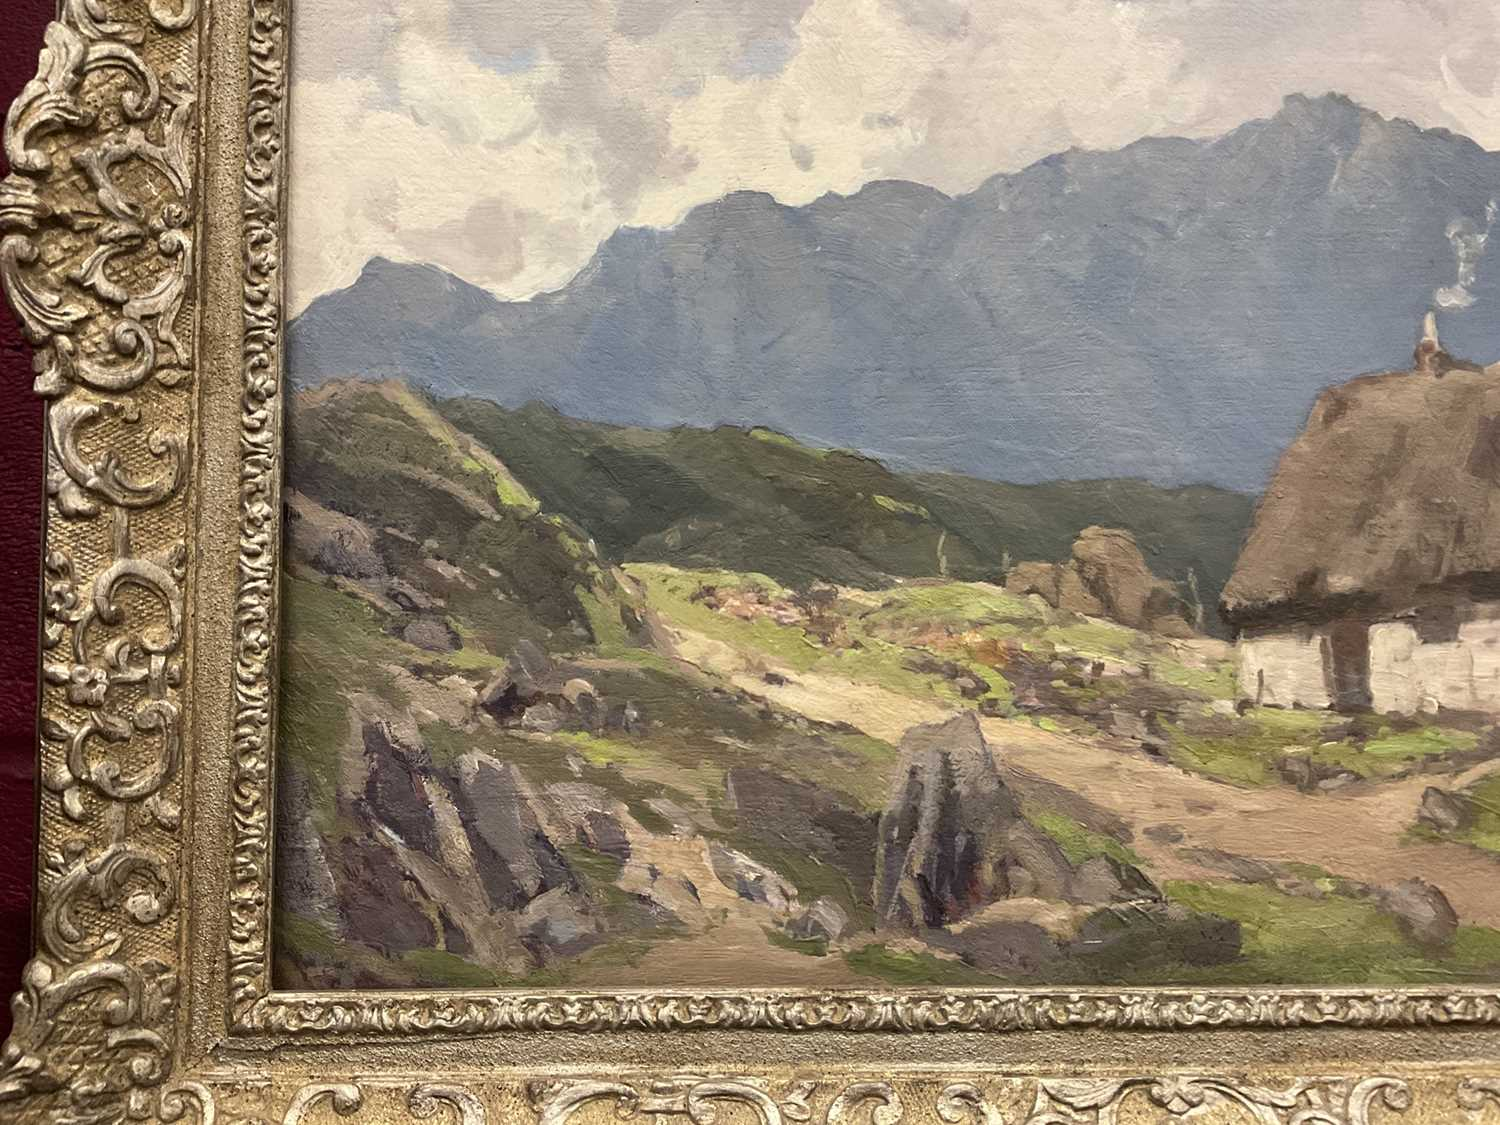 Lewis Taylor Gibb (1873-1945) oil on canvas - Crofters Cottage, 50cm x 61cm, in silvered frame - Image 5 of 9